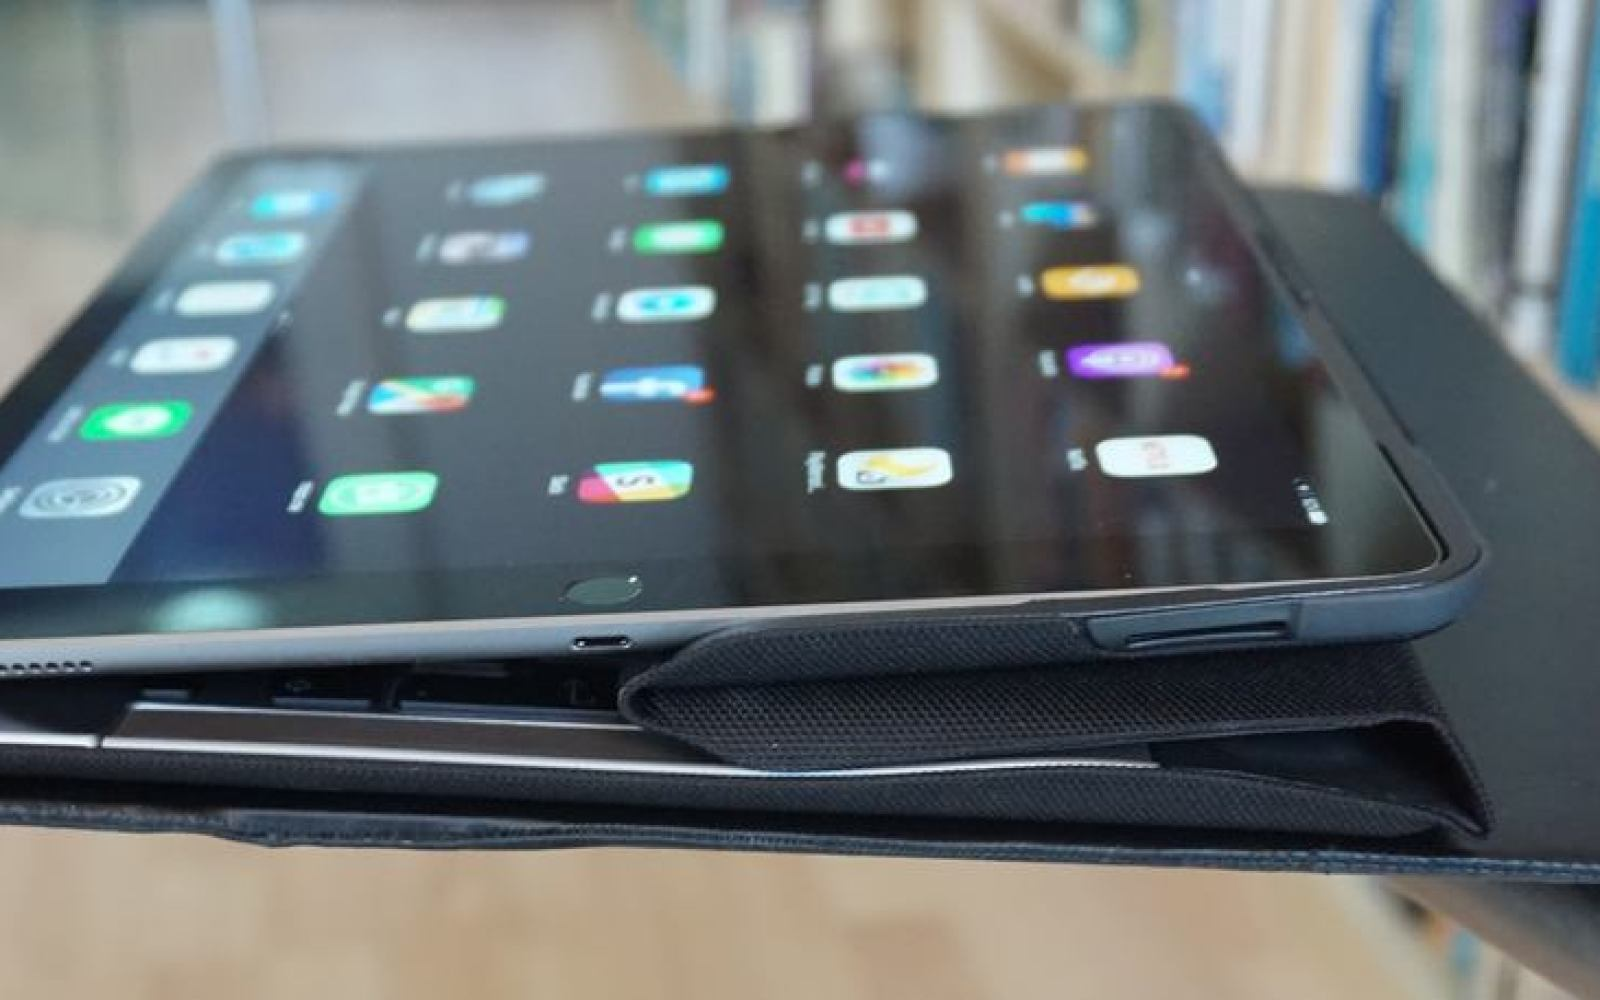 Tests reveal how Apple improved iPad Pro's display, & why iPad mini 4 is still best overall